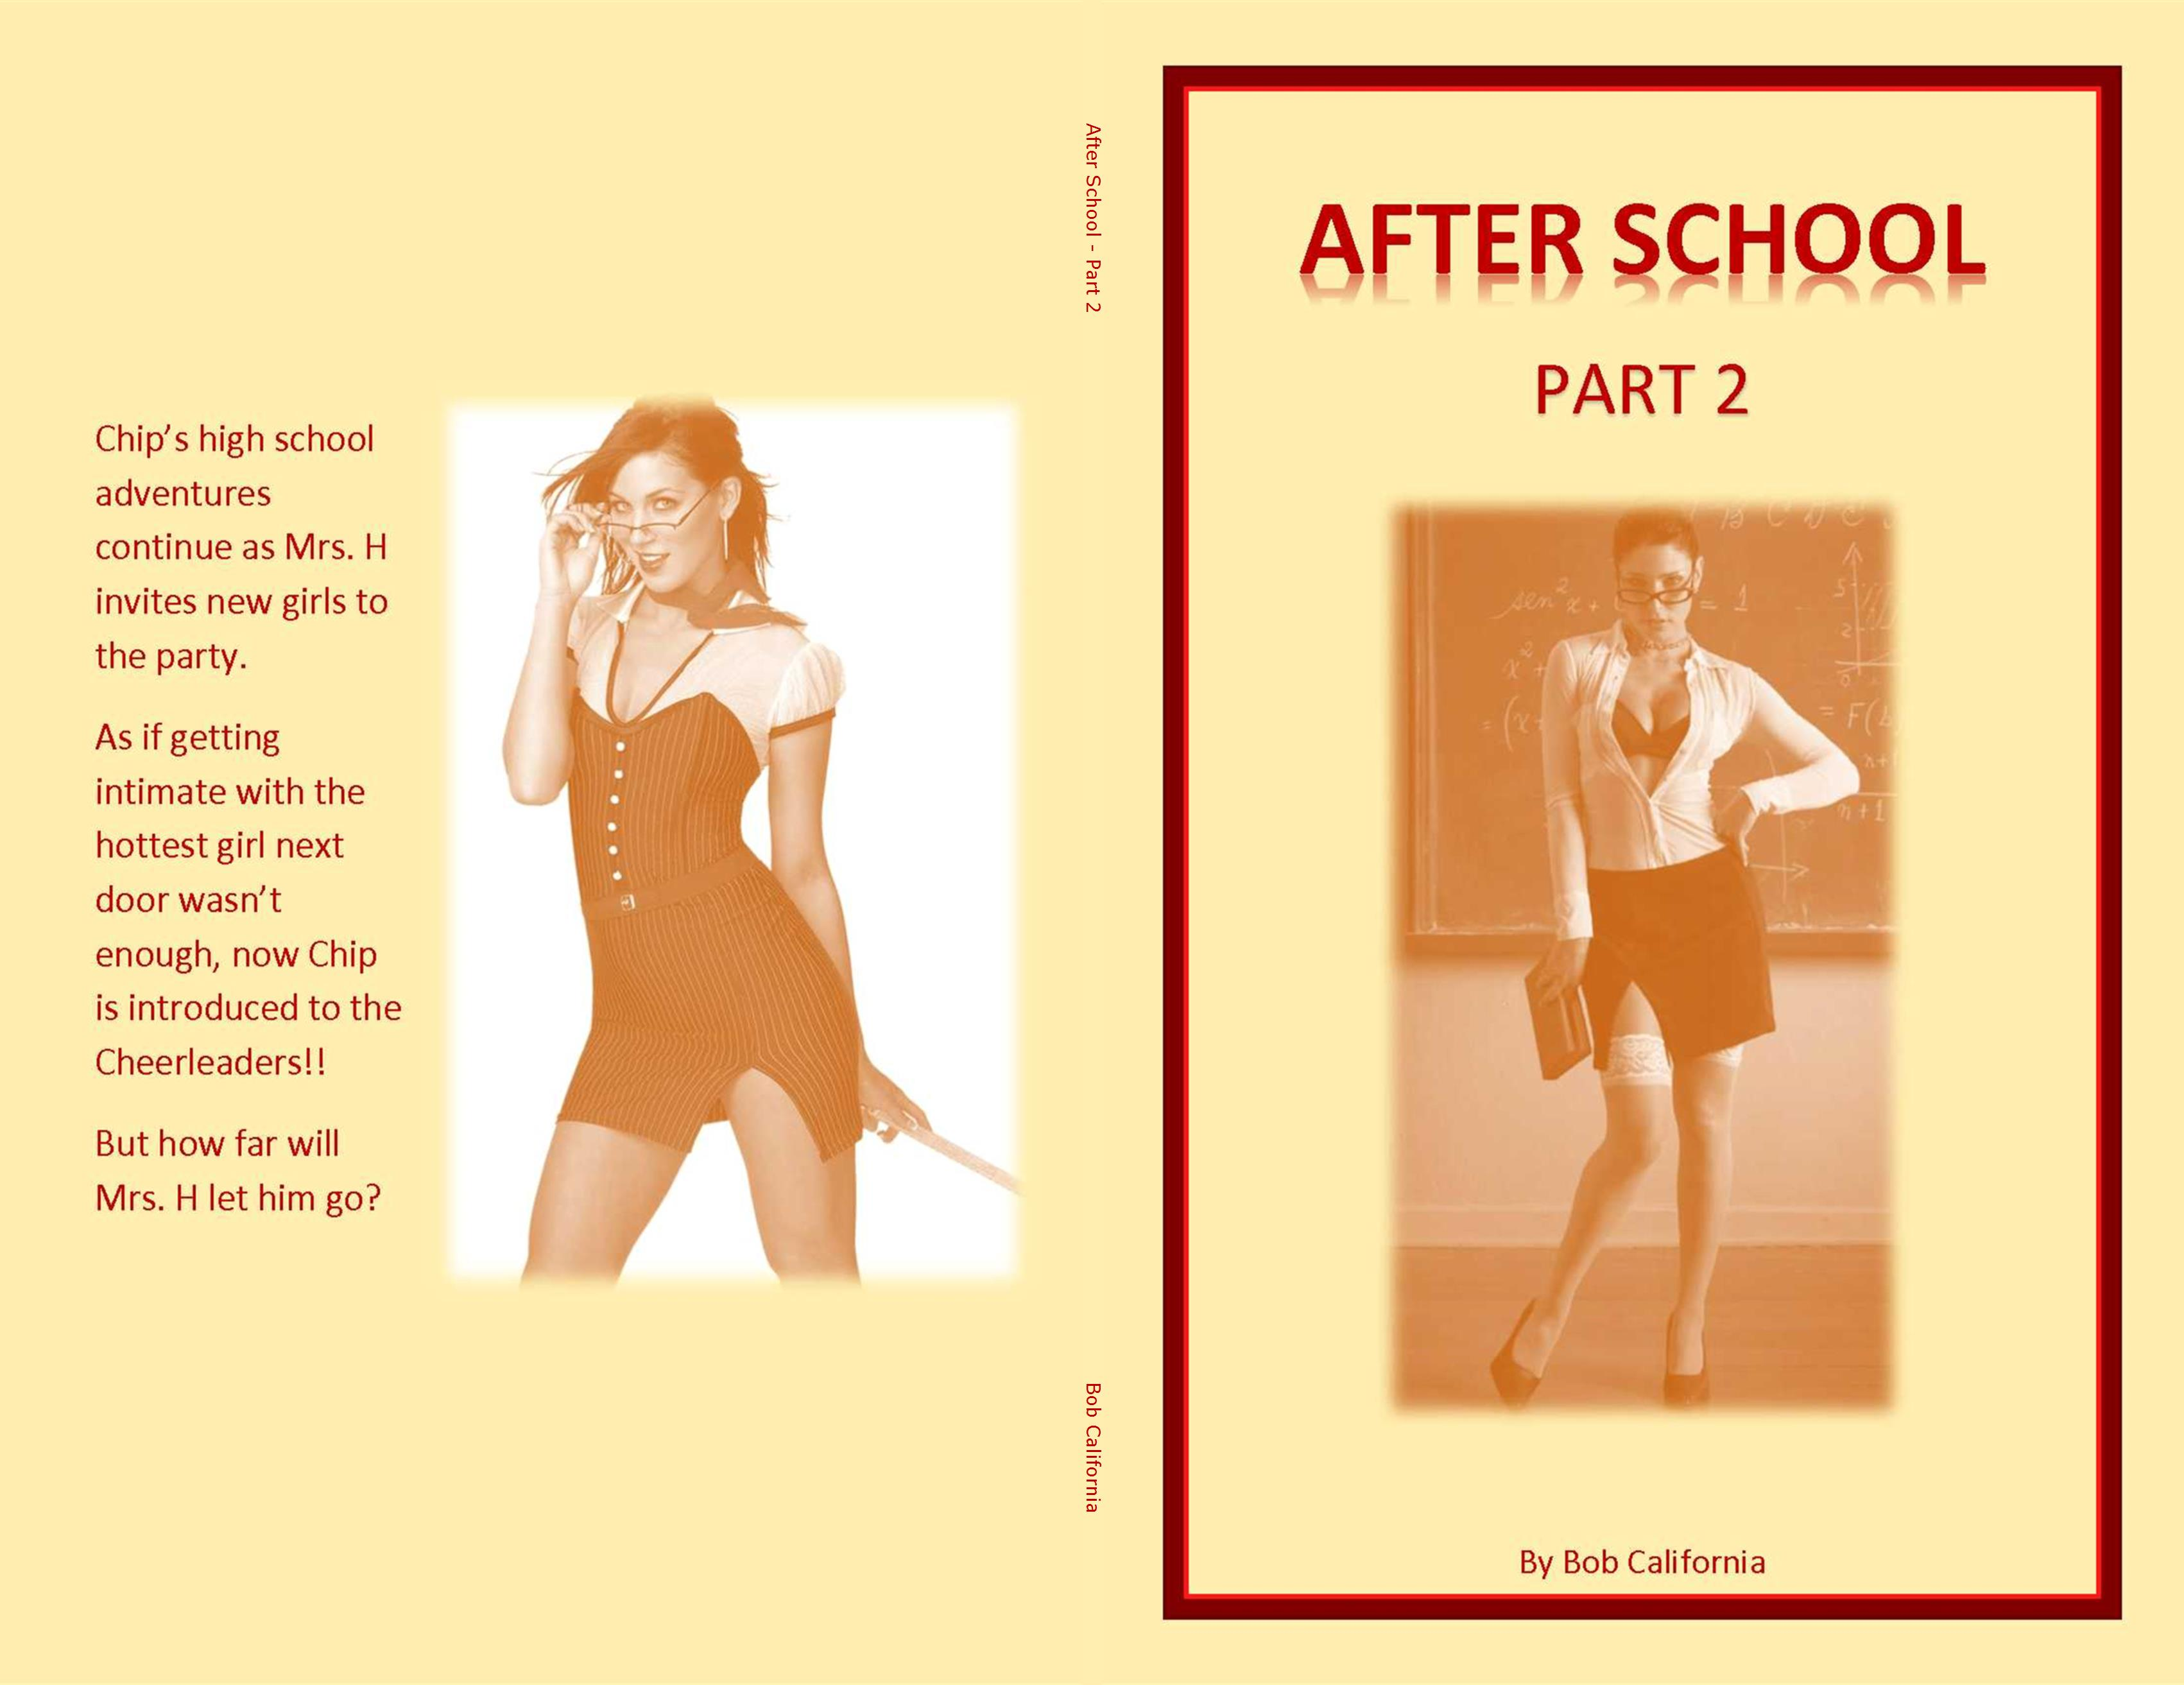 After School - Part 2 cover image